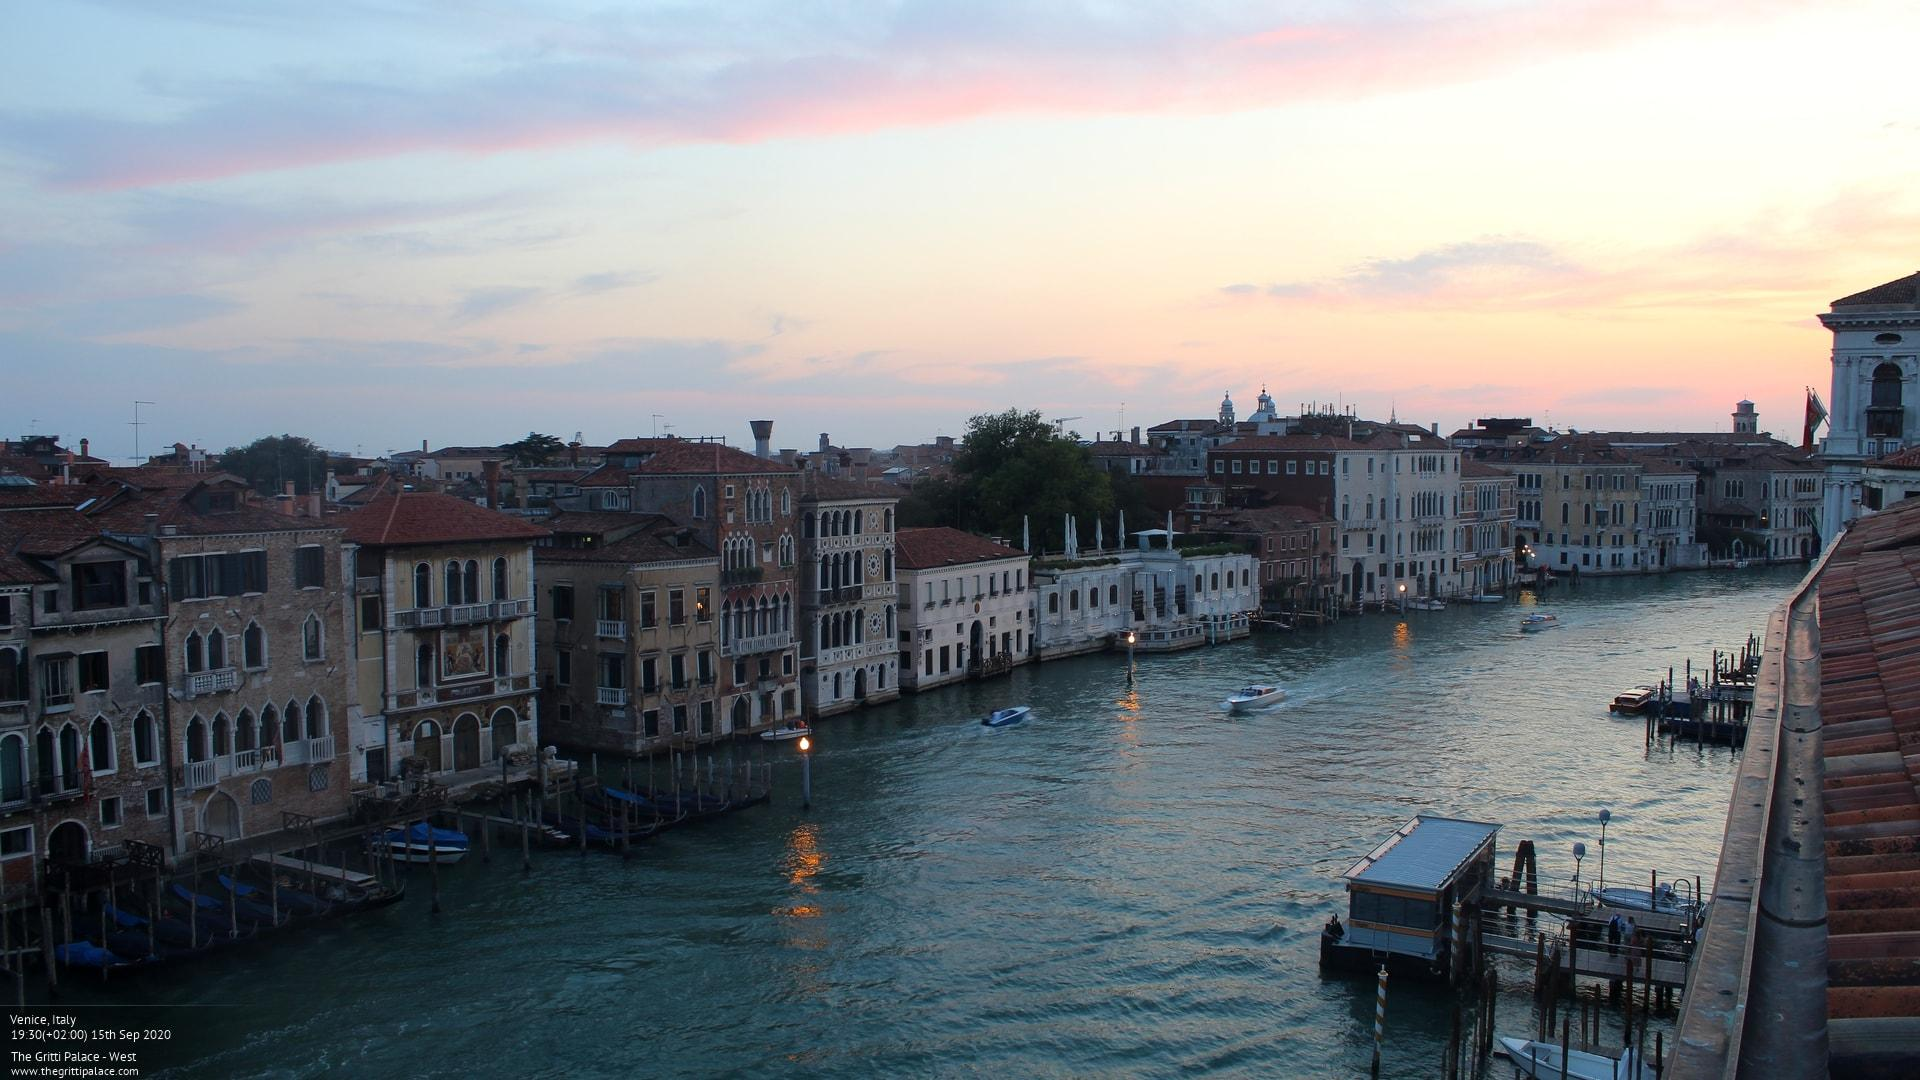 Webcam Venice: The Gritti Palace − west